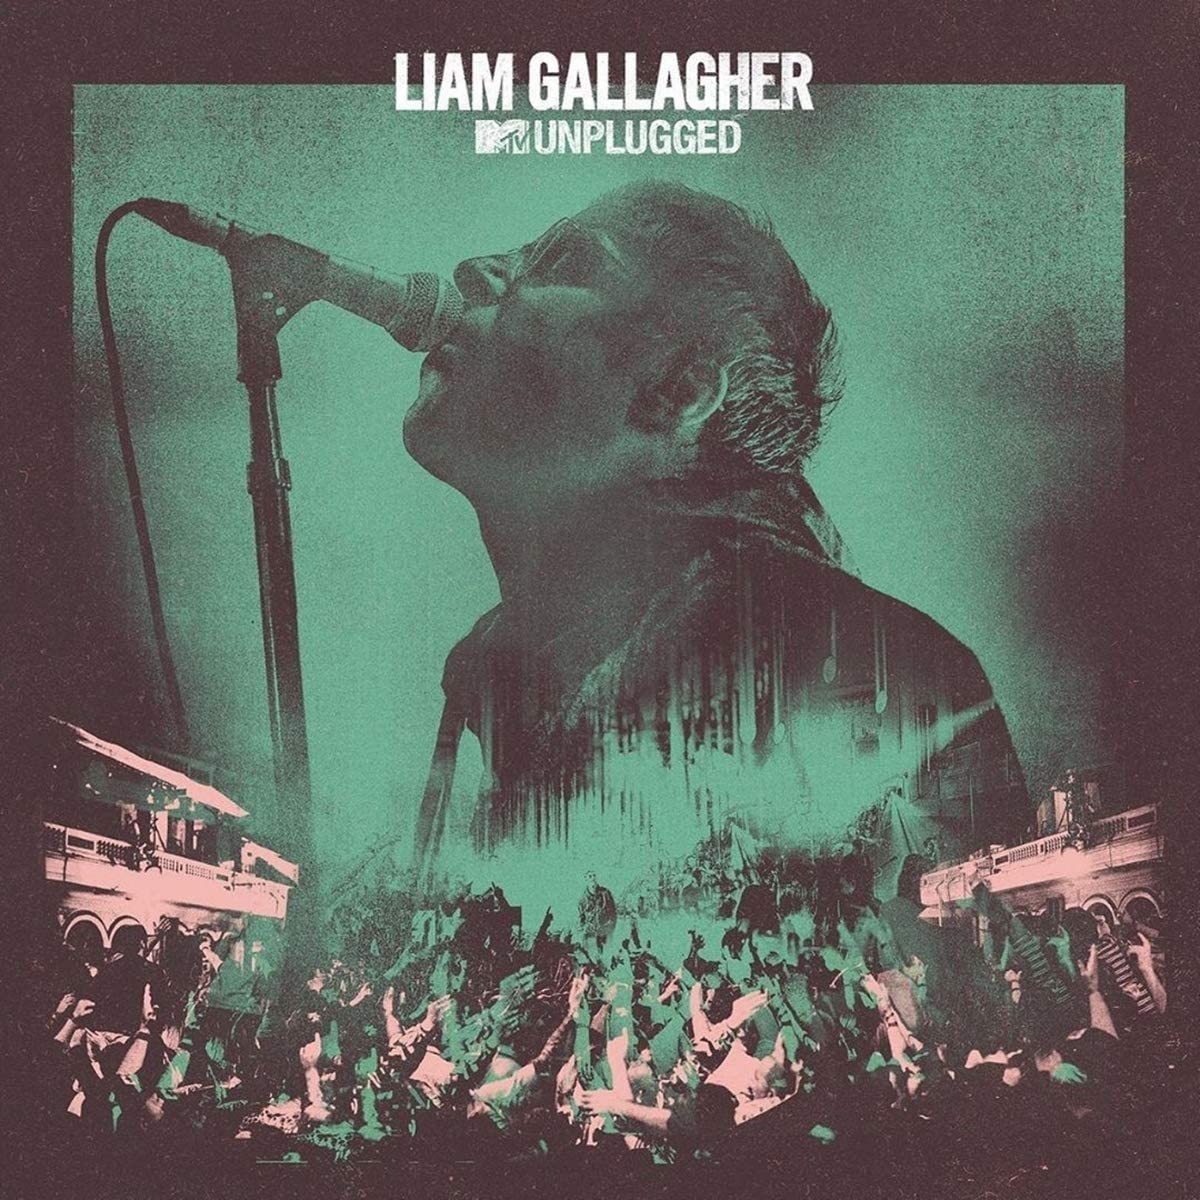 MTV Unplugged (Live At Hull City Hall) - Liam Gallagher [VINYL]